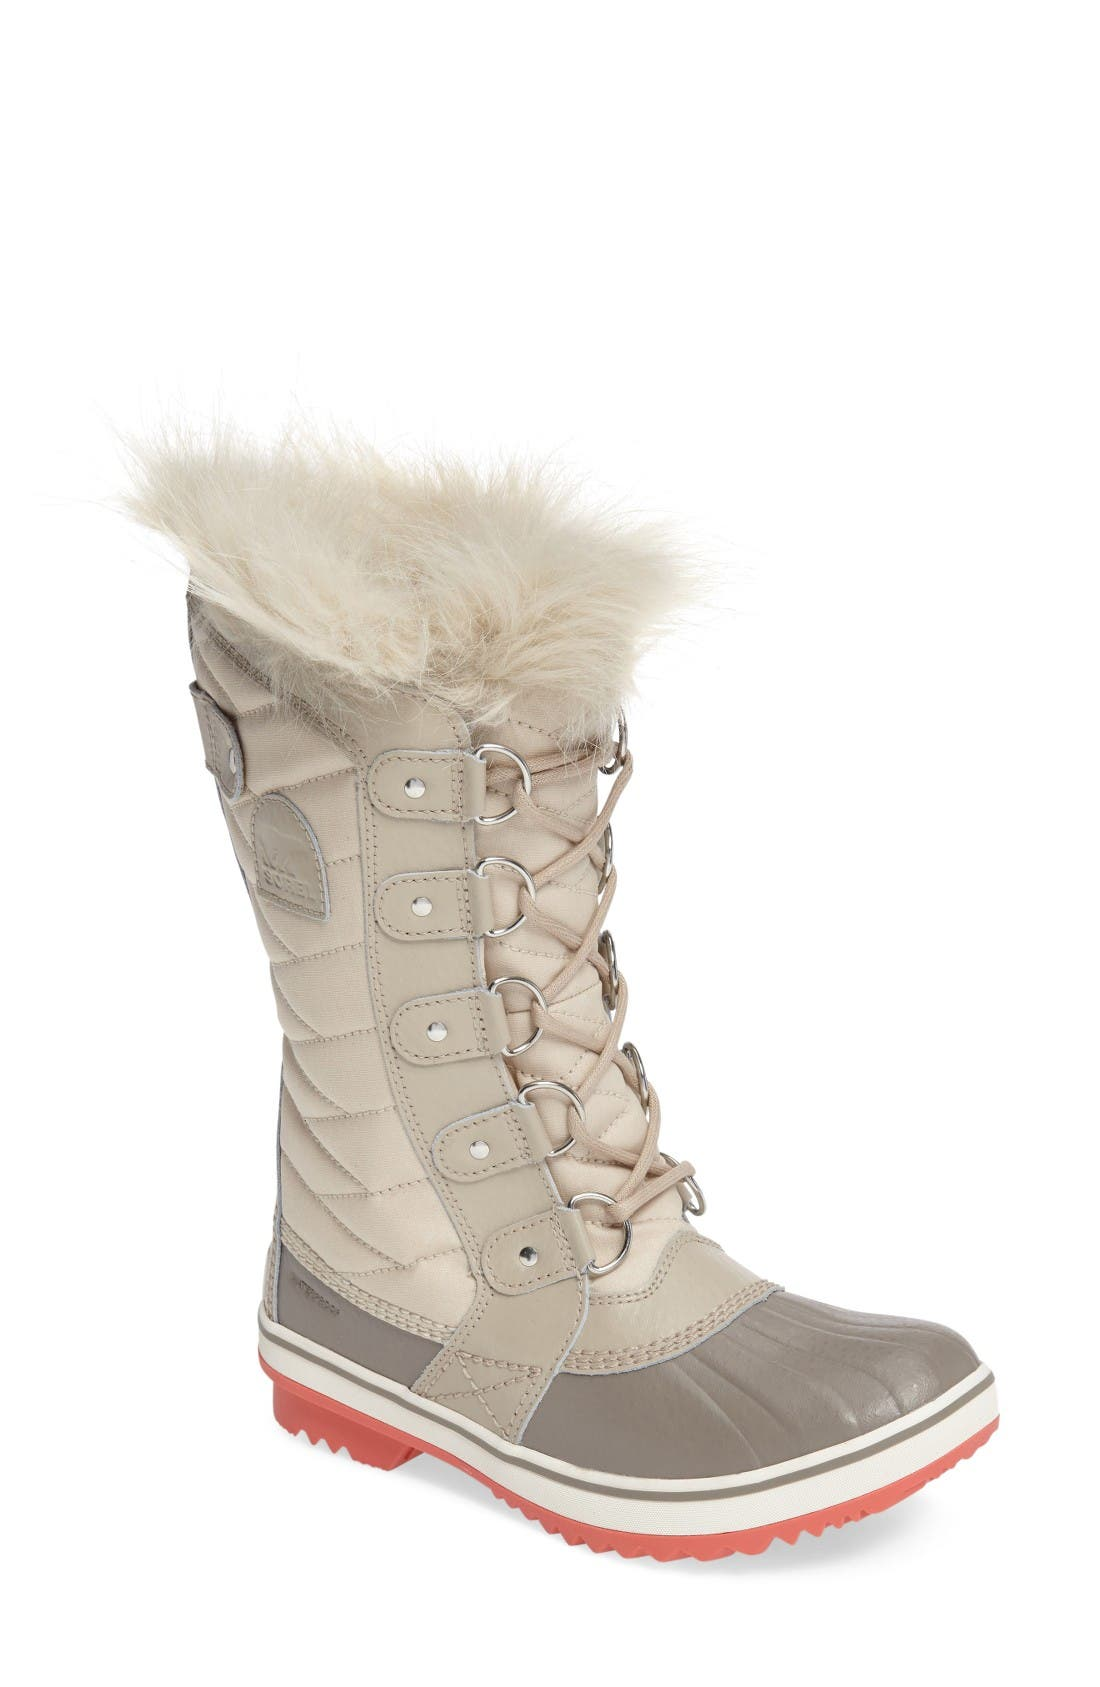 Alternate Image 1 Selected - SOREL 'Tofino II' Faux Fur Lined Waterproof Boot (Women)